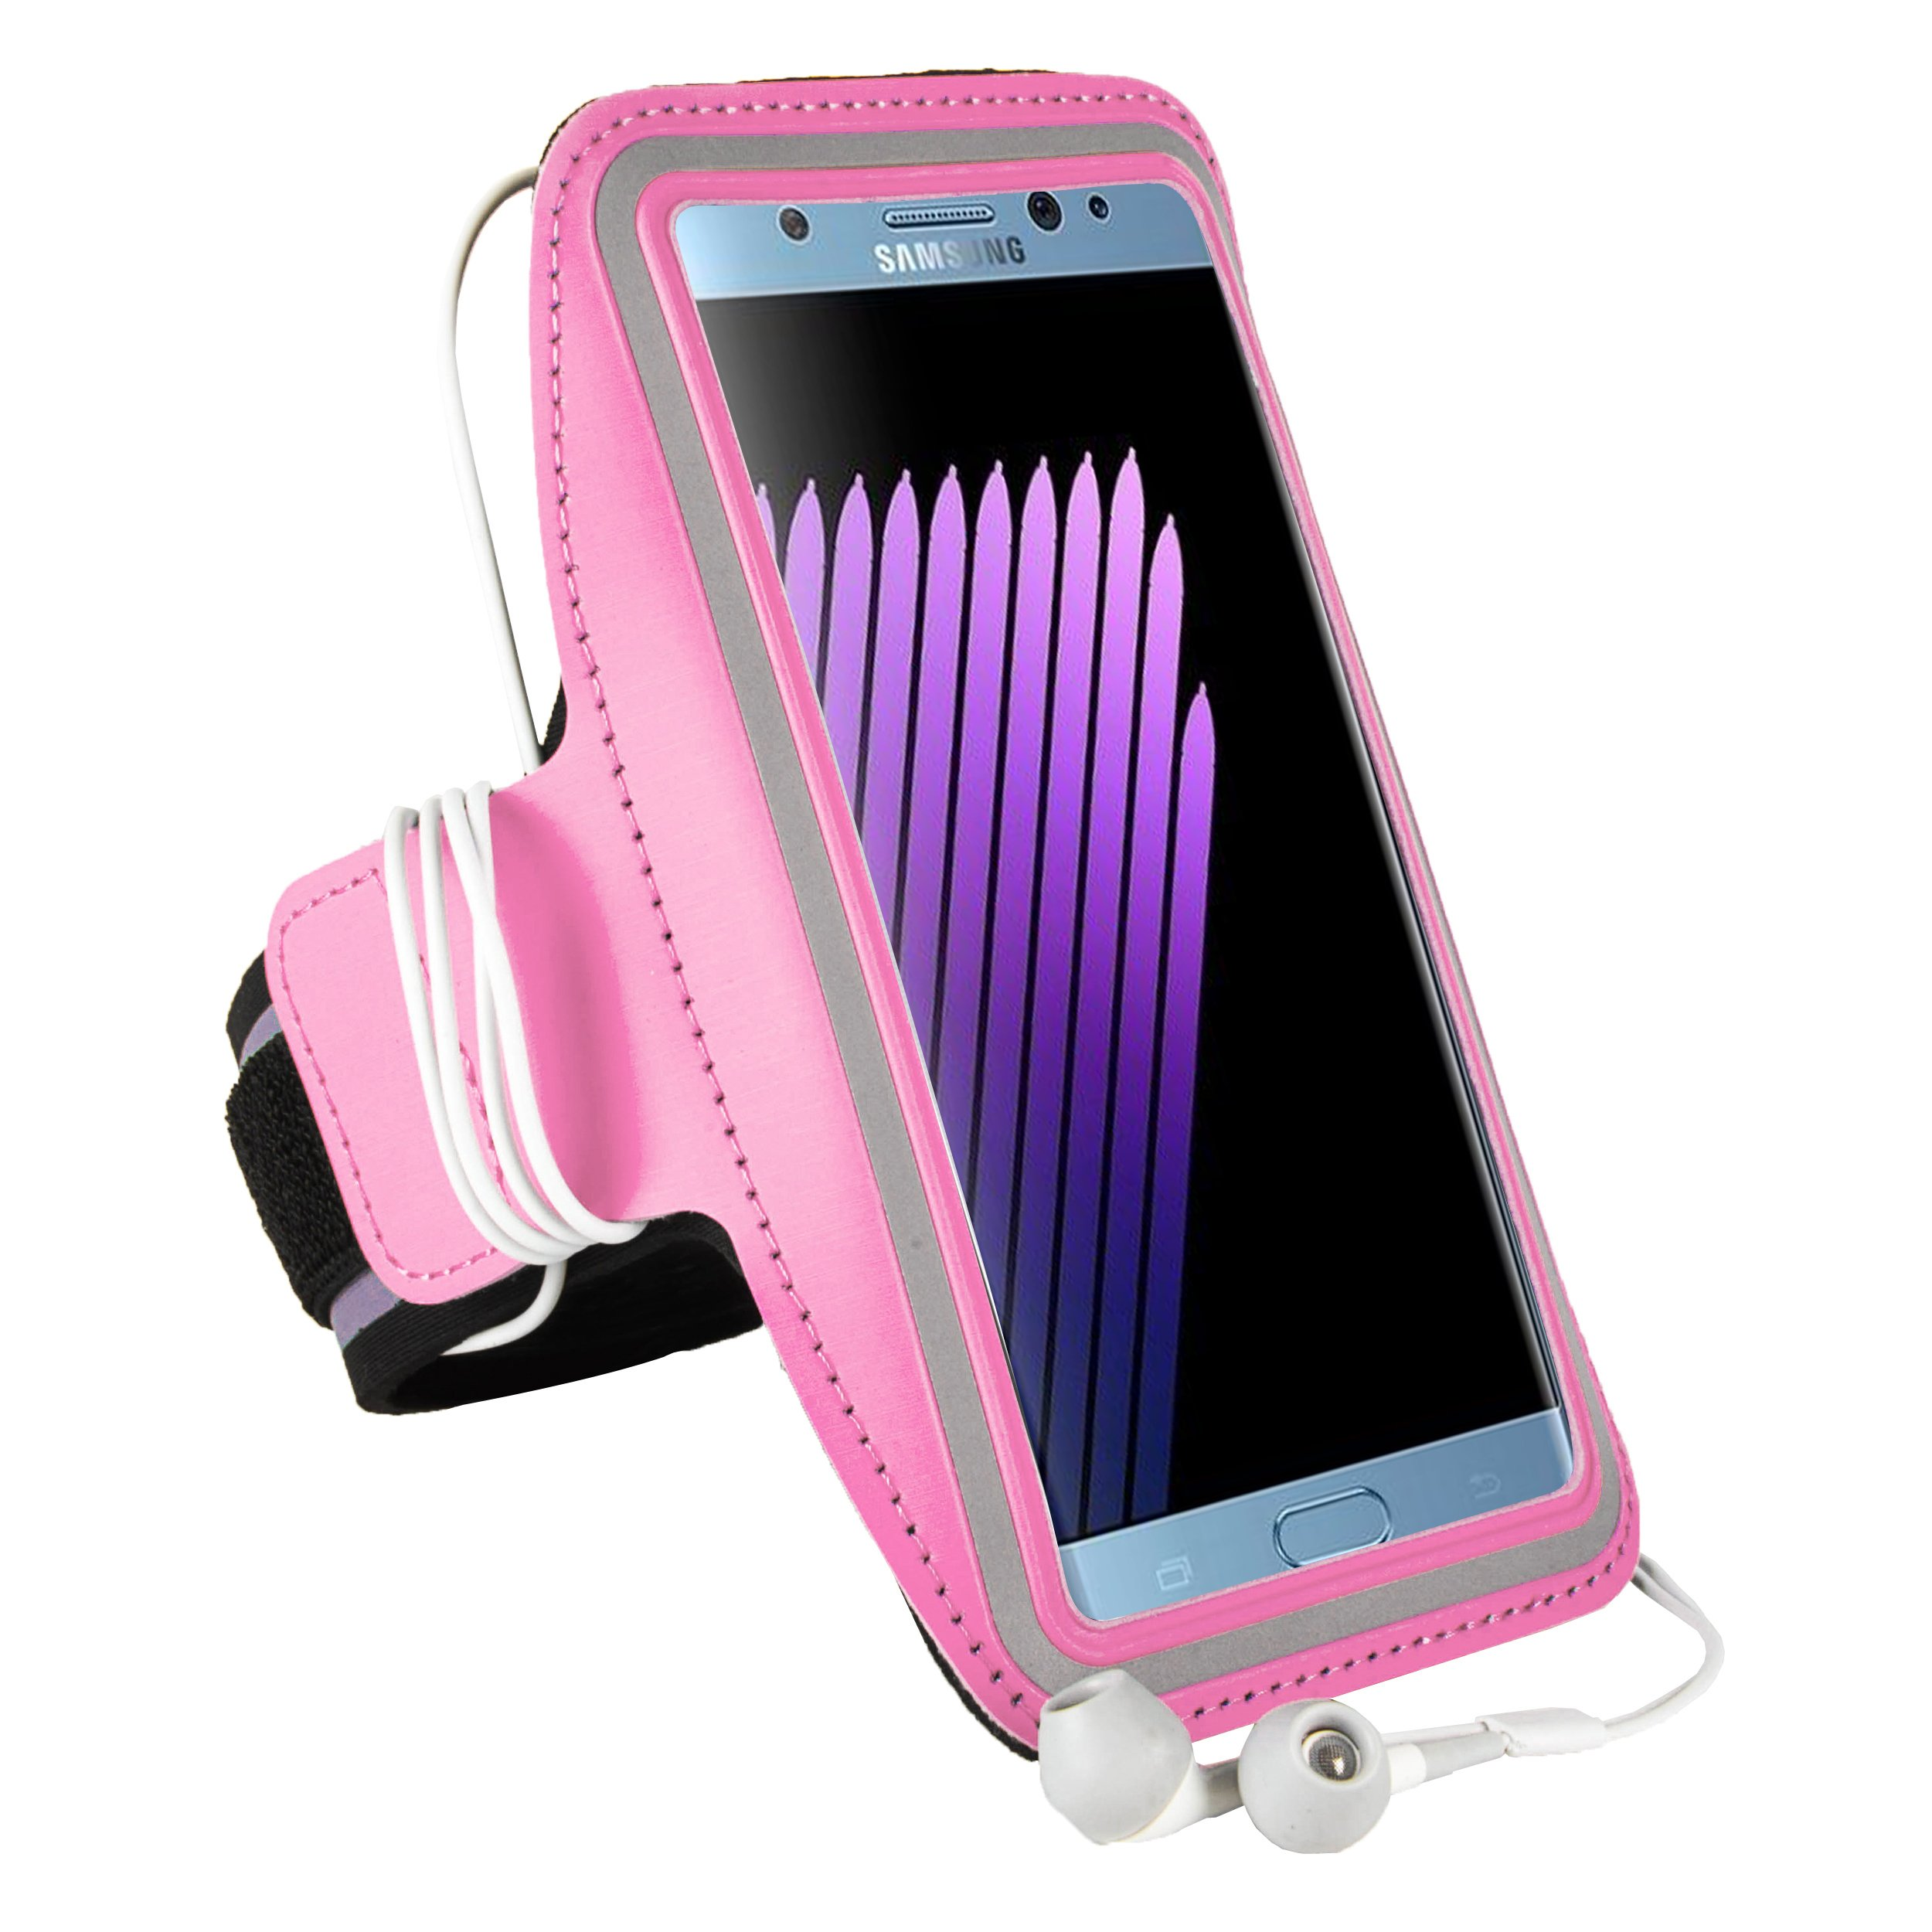 Suamclife Sport Gym Running Armband Carrying Case for Samsung Galaxy S8 Active/A5 C7 J5 J7/J7 Pro/J7 Perx/J7 V/C5 Pro/Xcover 4 (Pink)